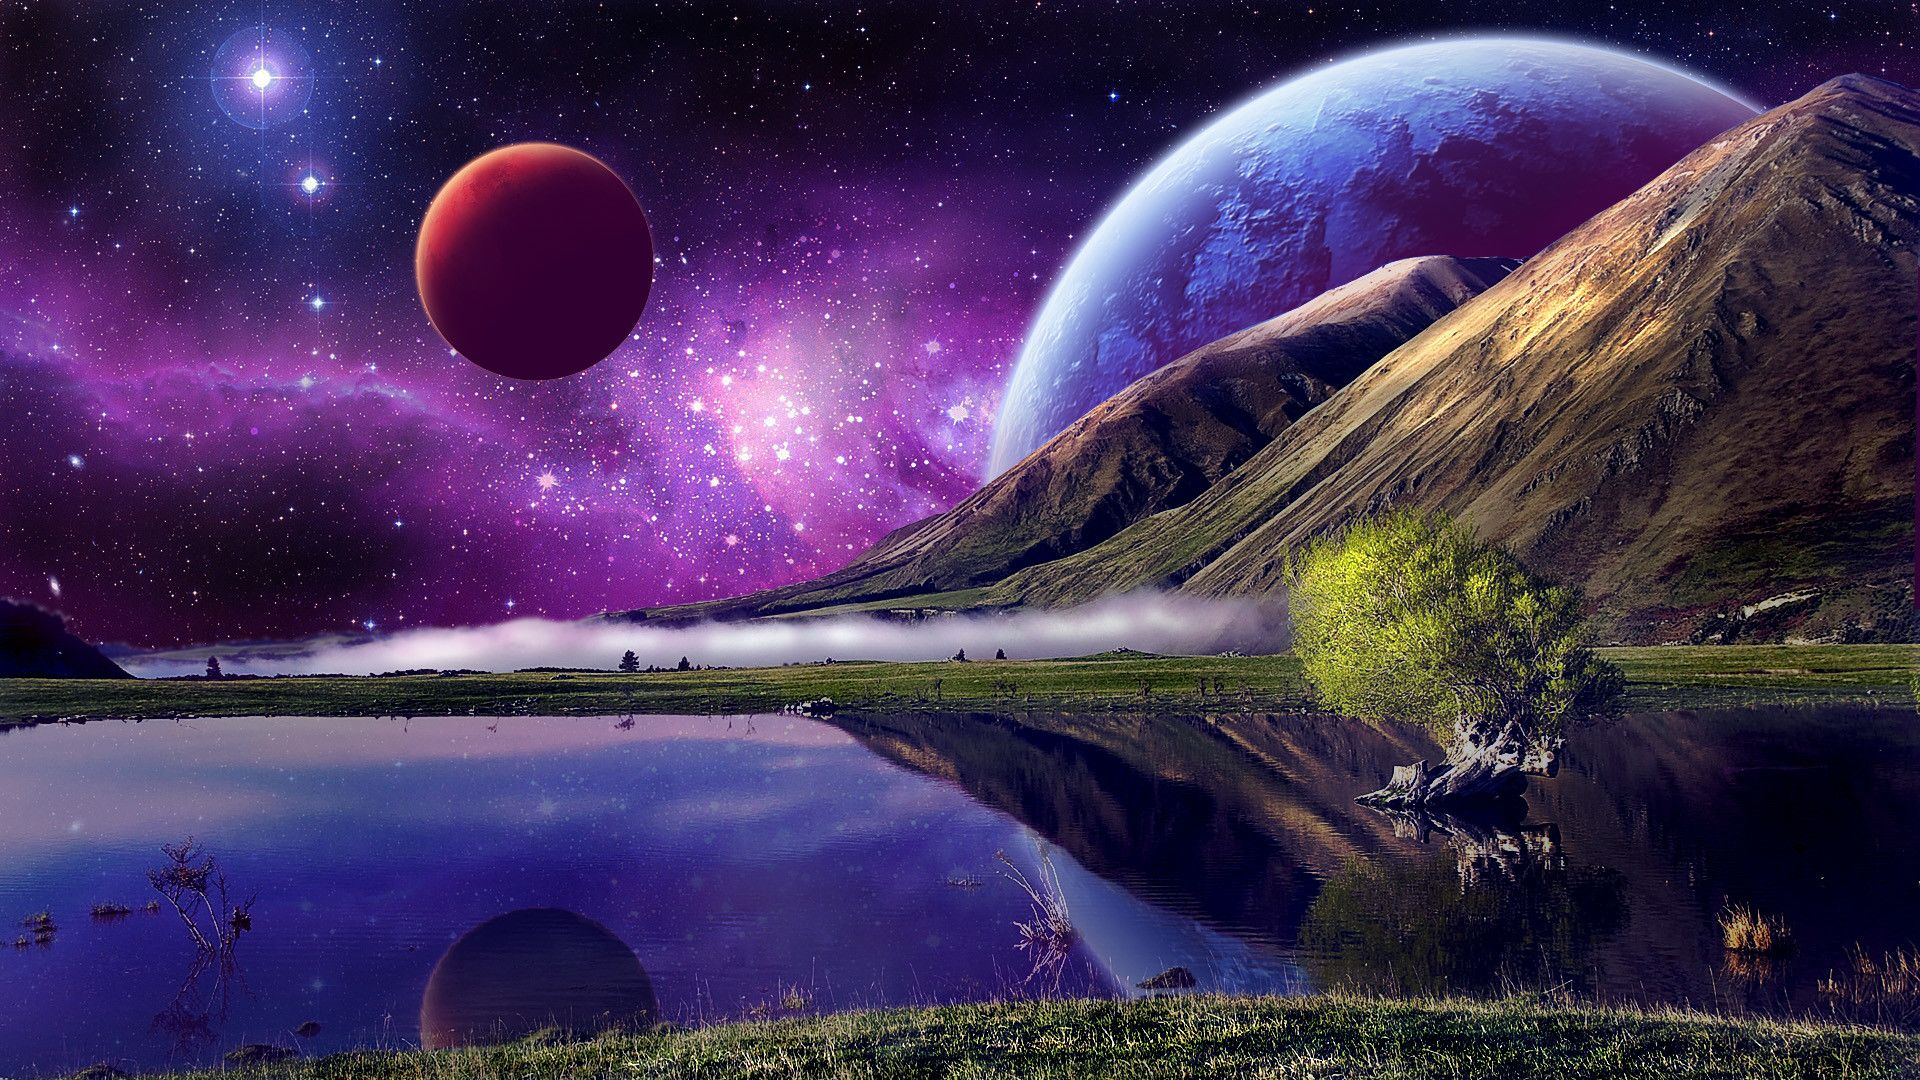 1920x1080 epic space wallpapers hd 1080p epic space background hd